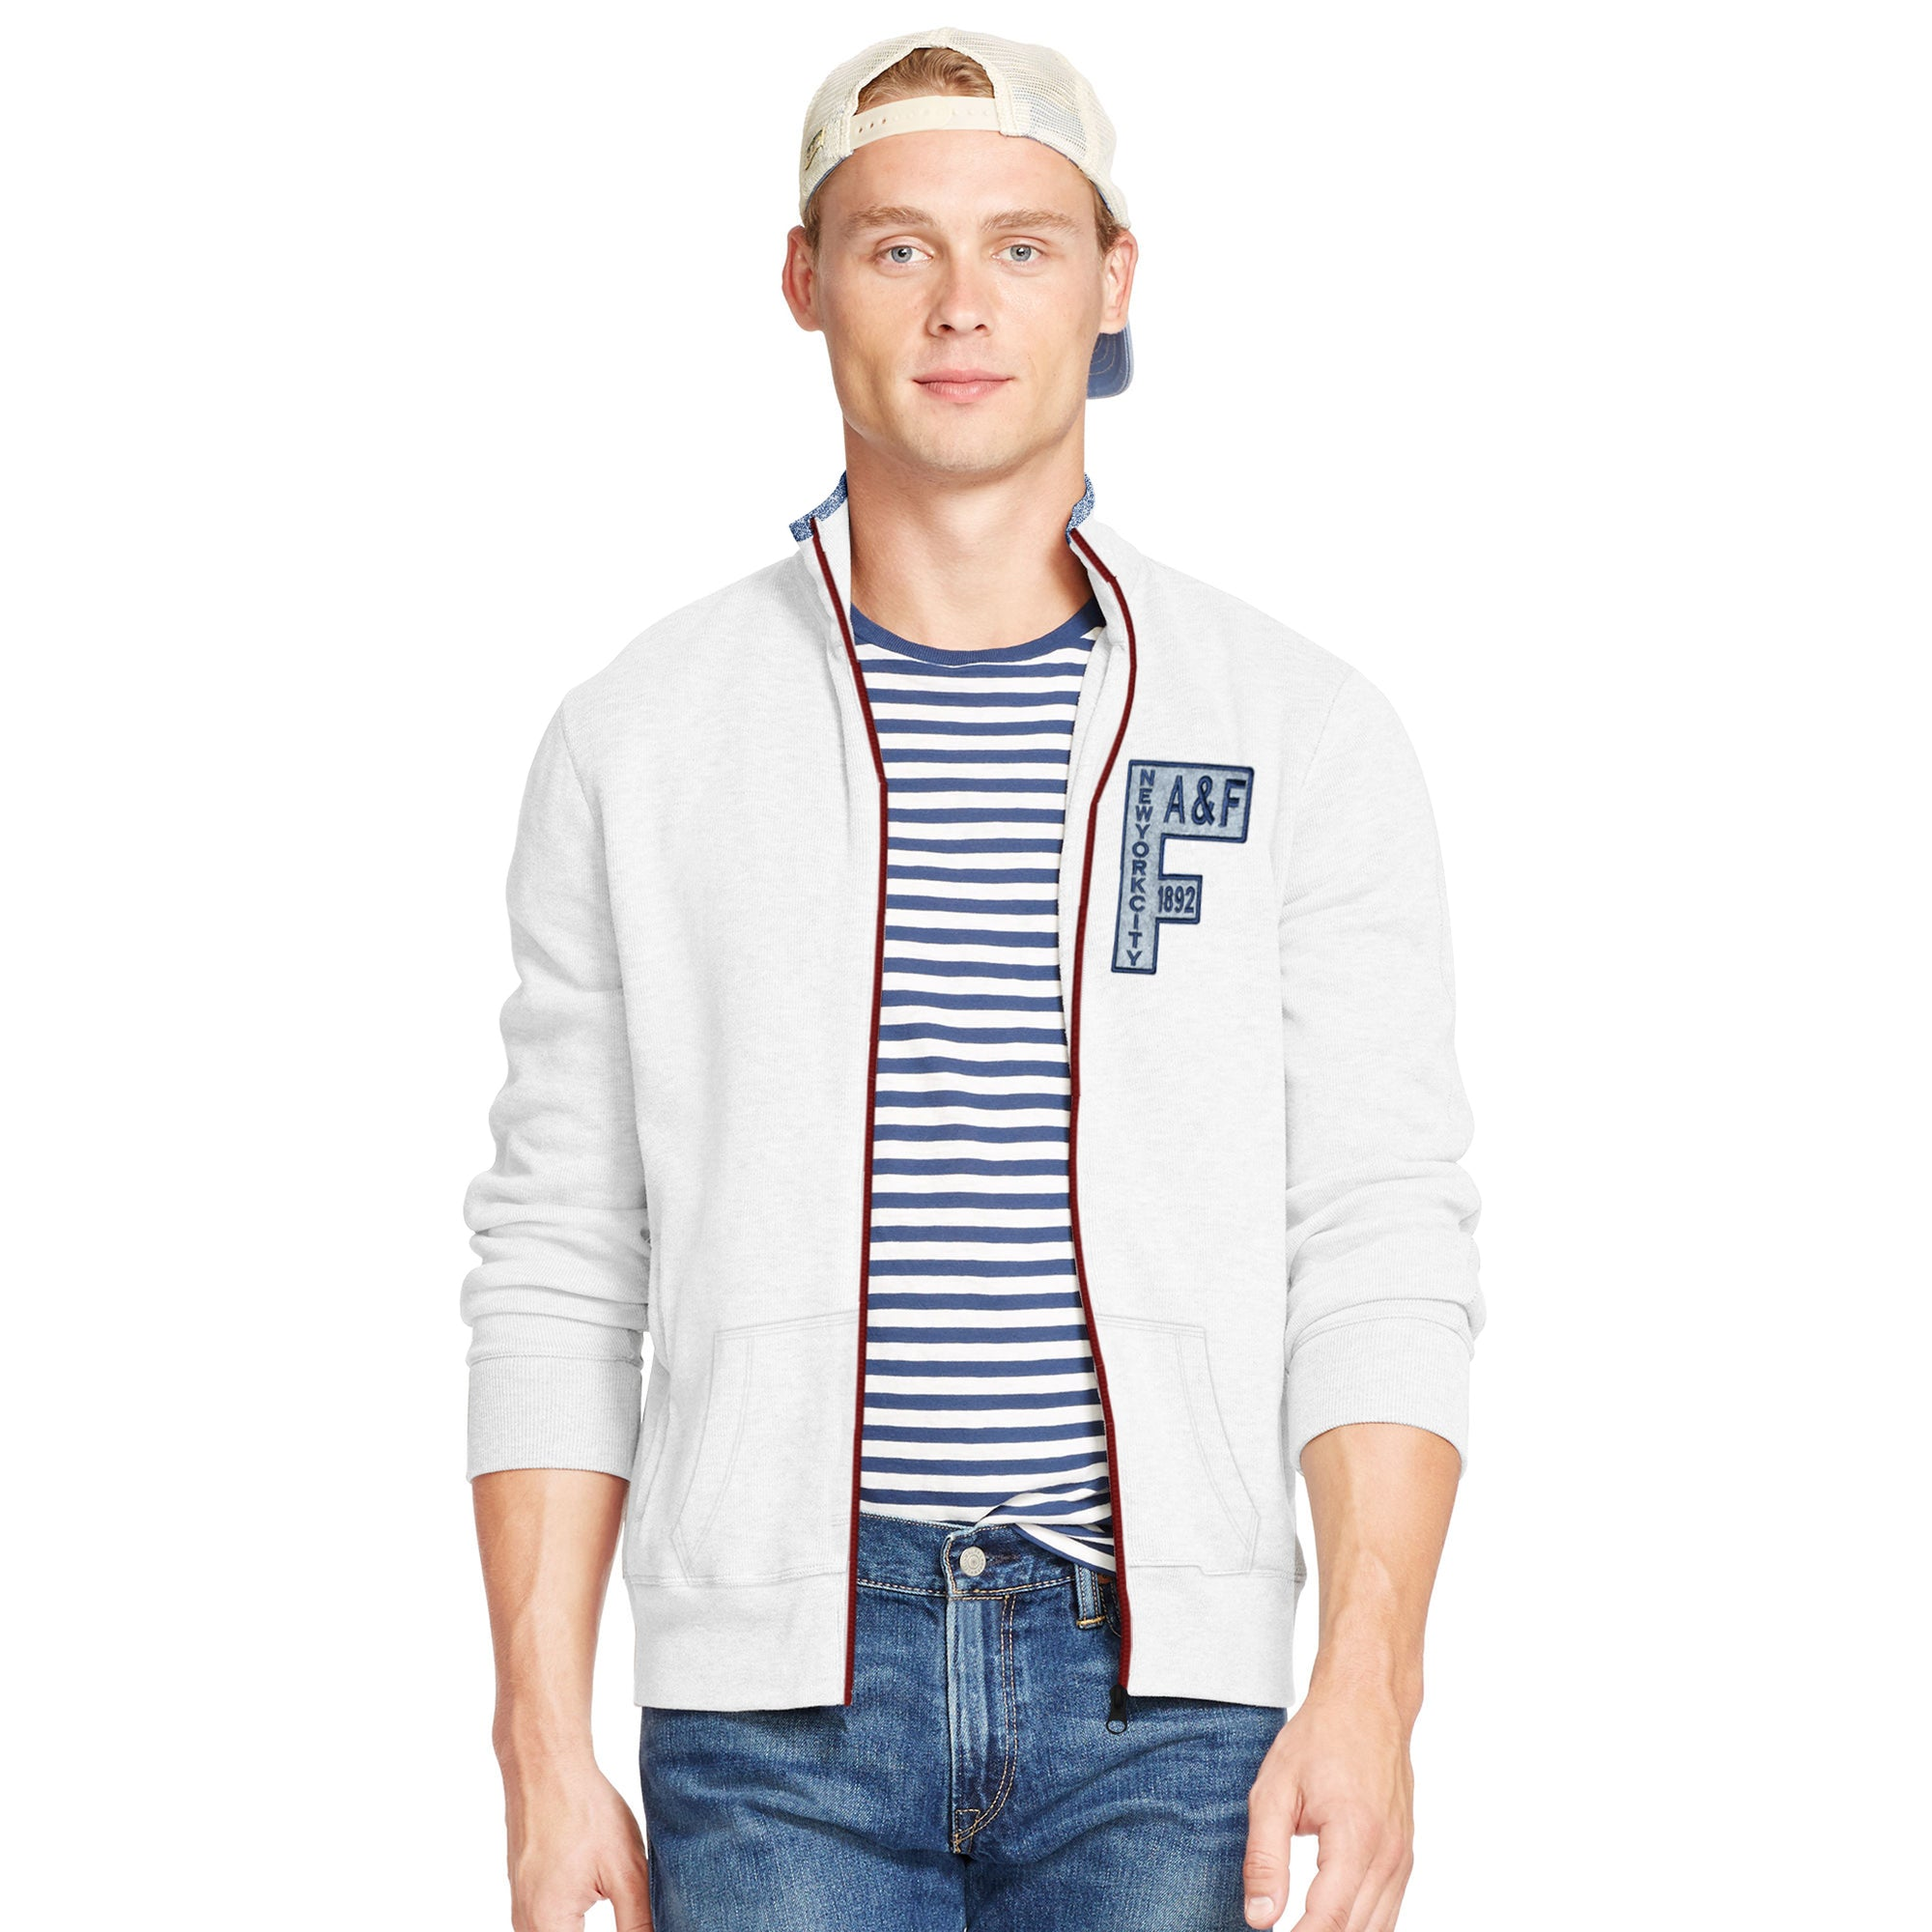 brandsego - A&F Fleece Full Zipper Mock Neck Jacket For Men-White-BE7503